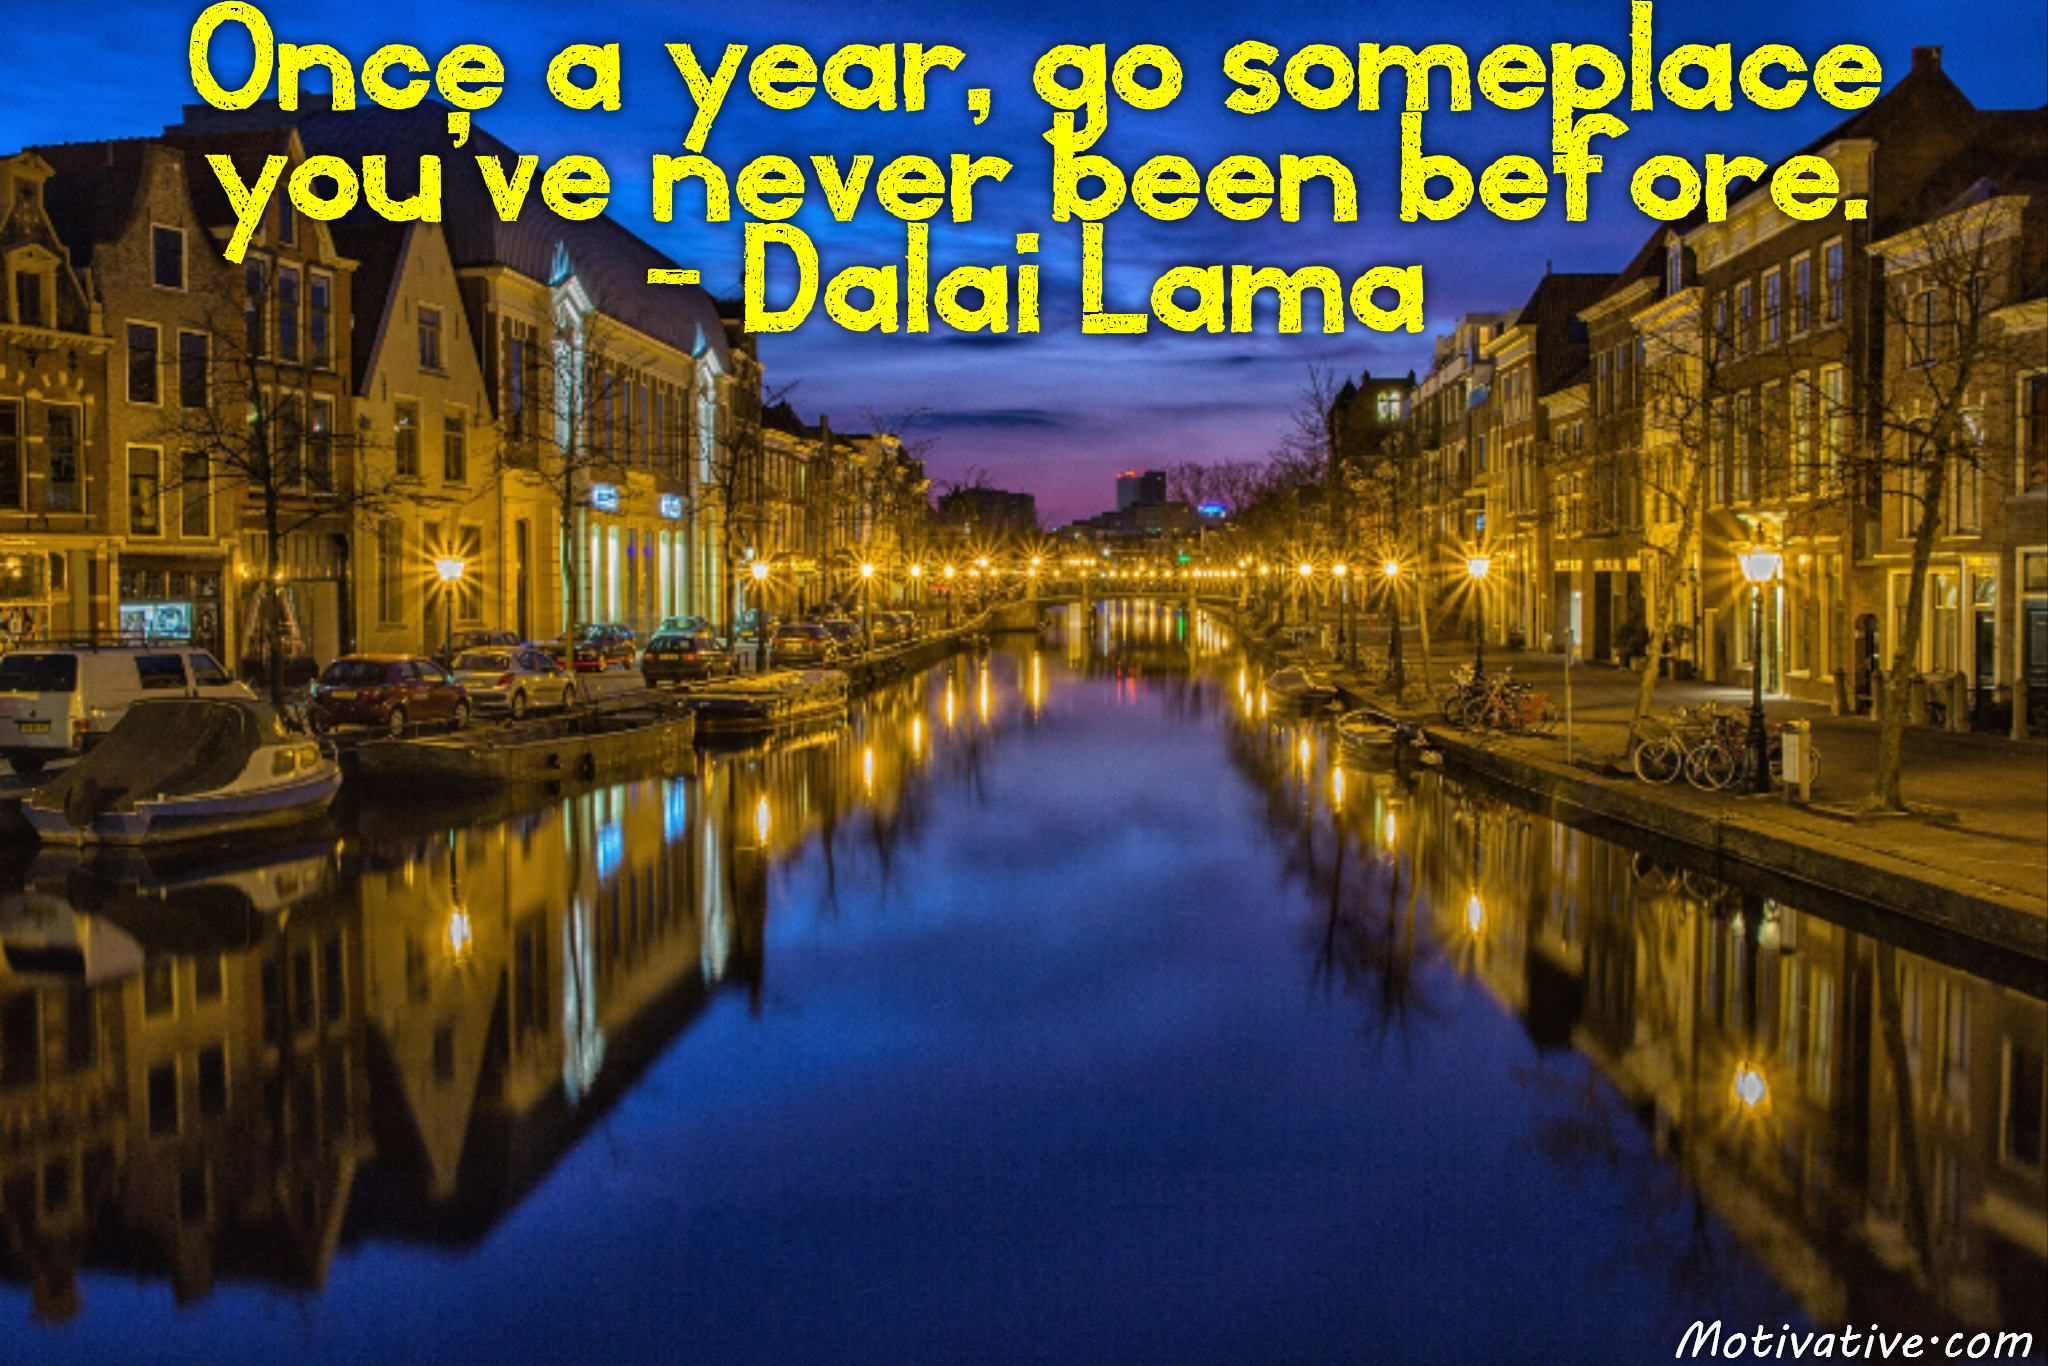 Once a year, go someplace you've never been before. – Dalai Lama